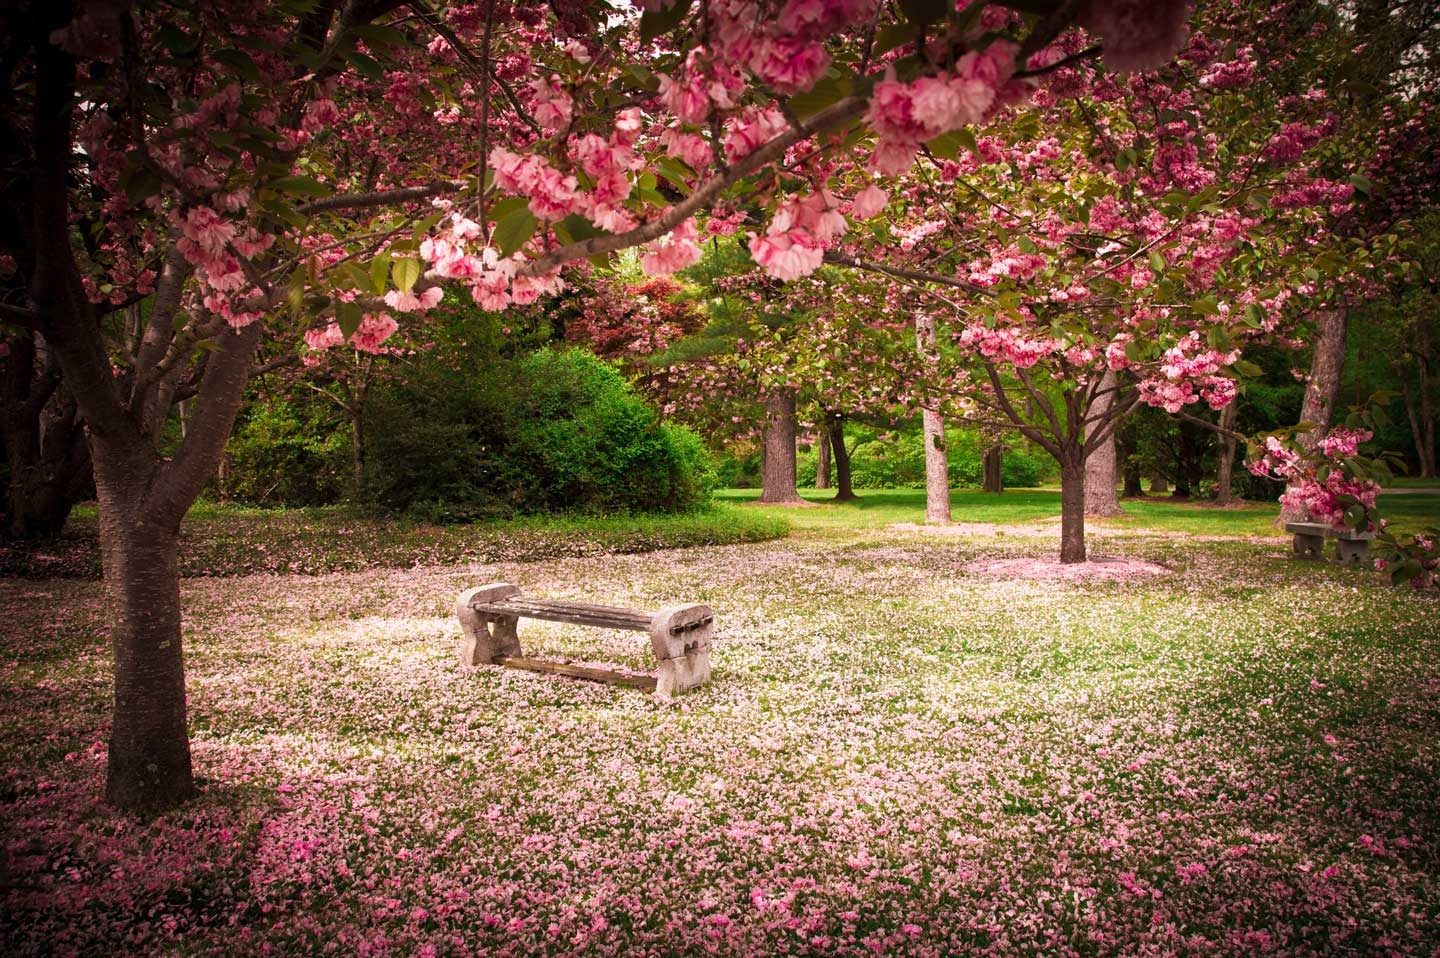 Beautiful park setting and bench amongst pick flowering trees